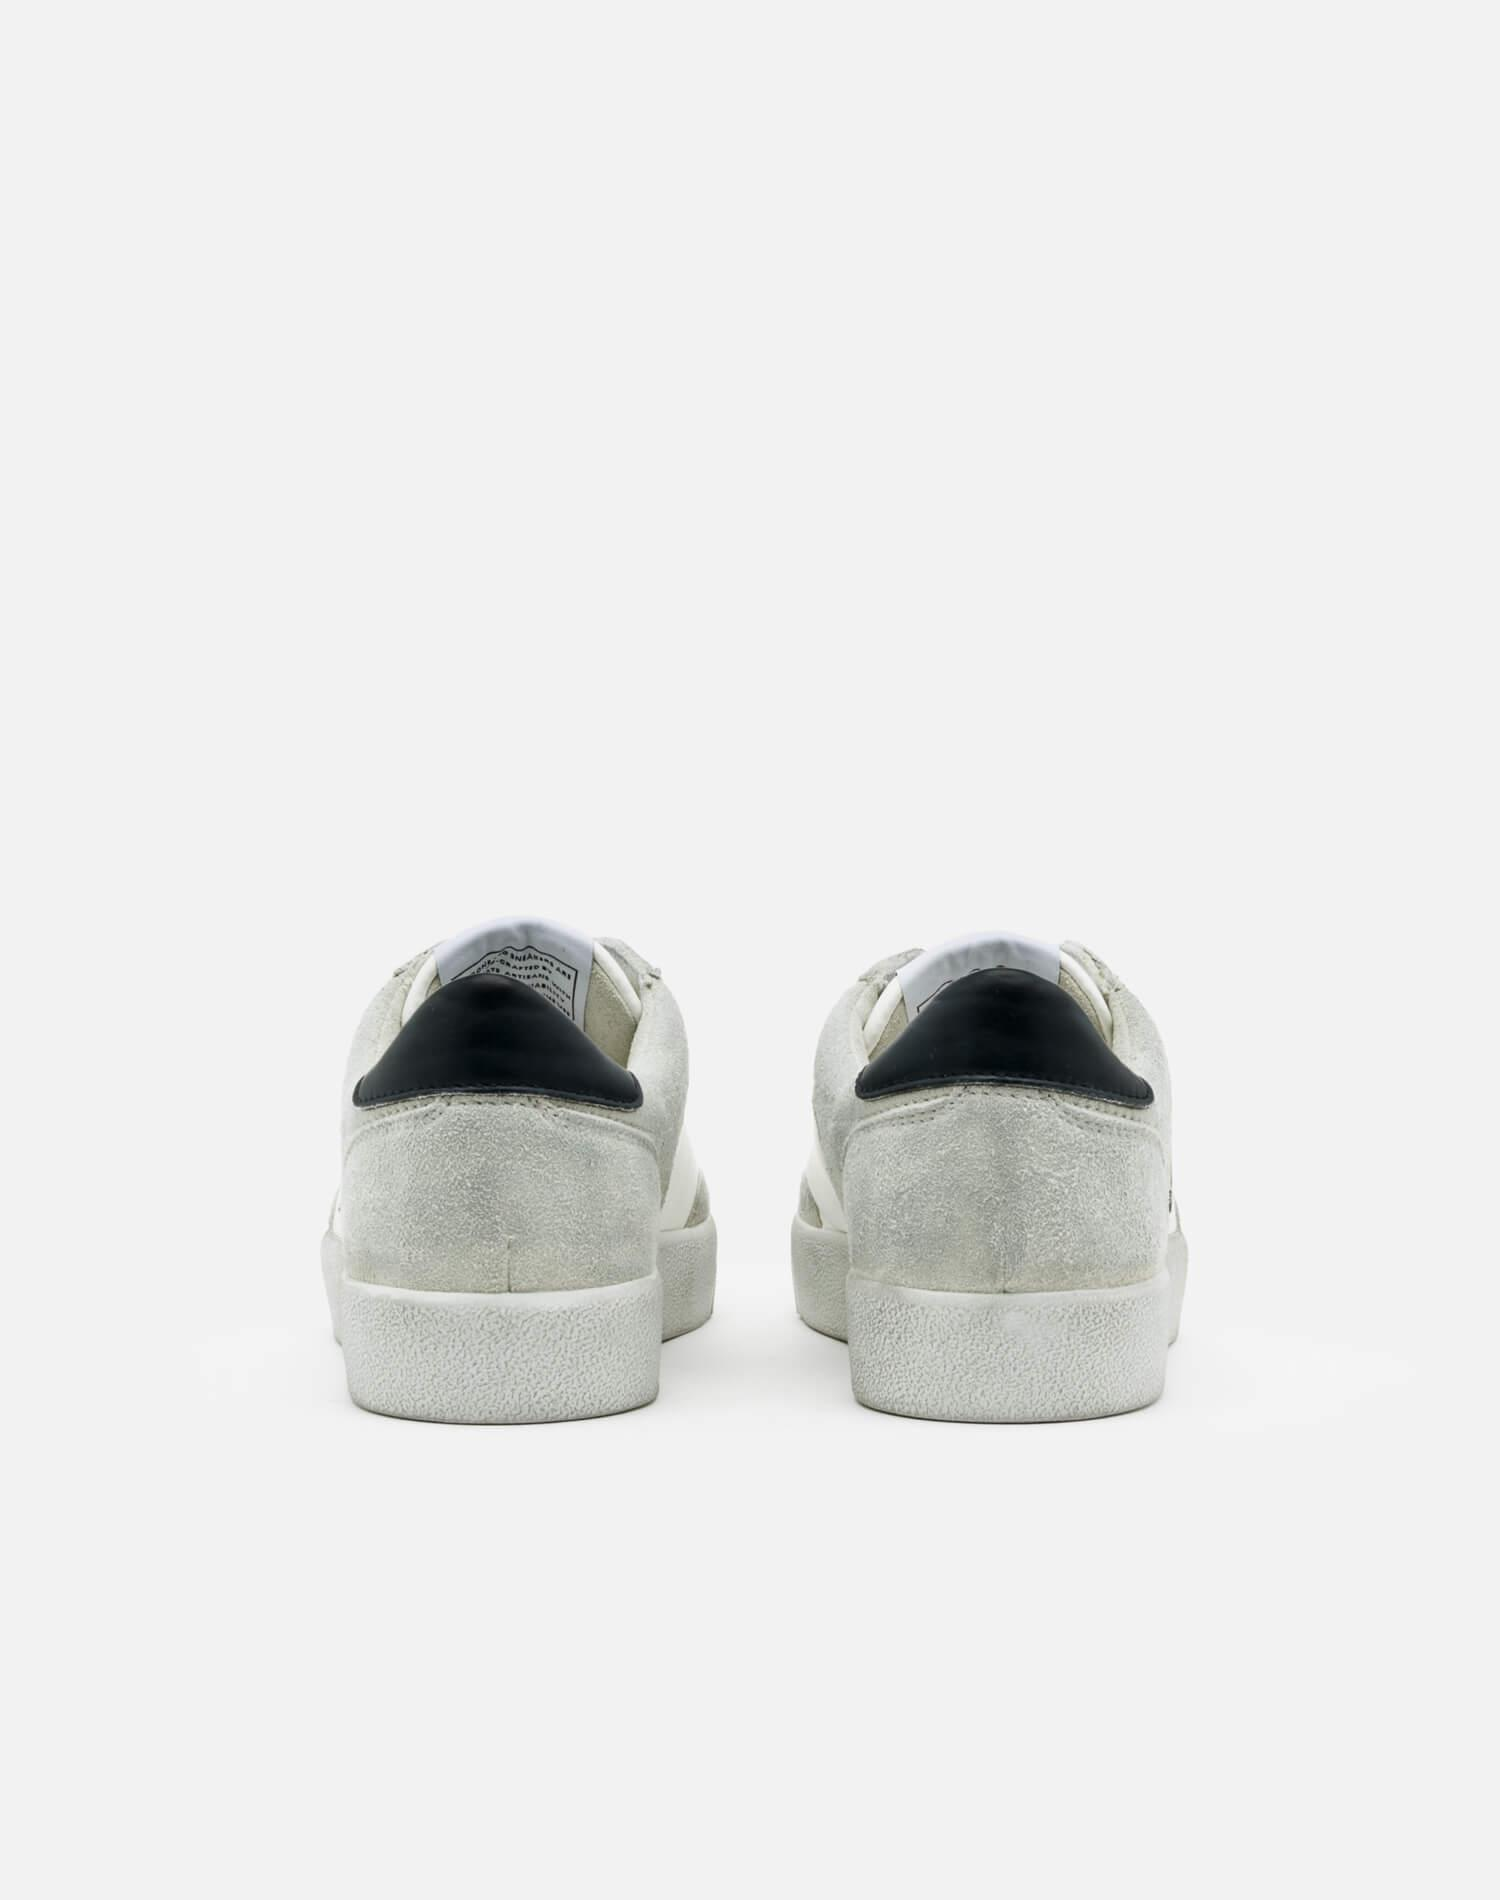 90s Sustainable Skate Shoe - White and Black 3